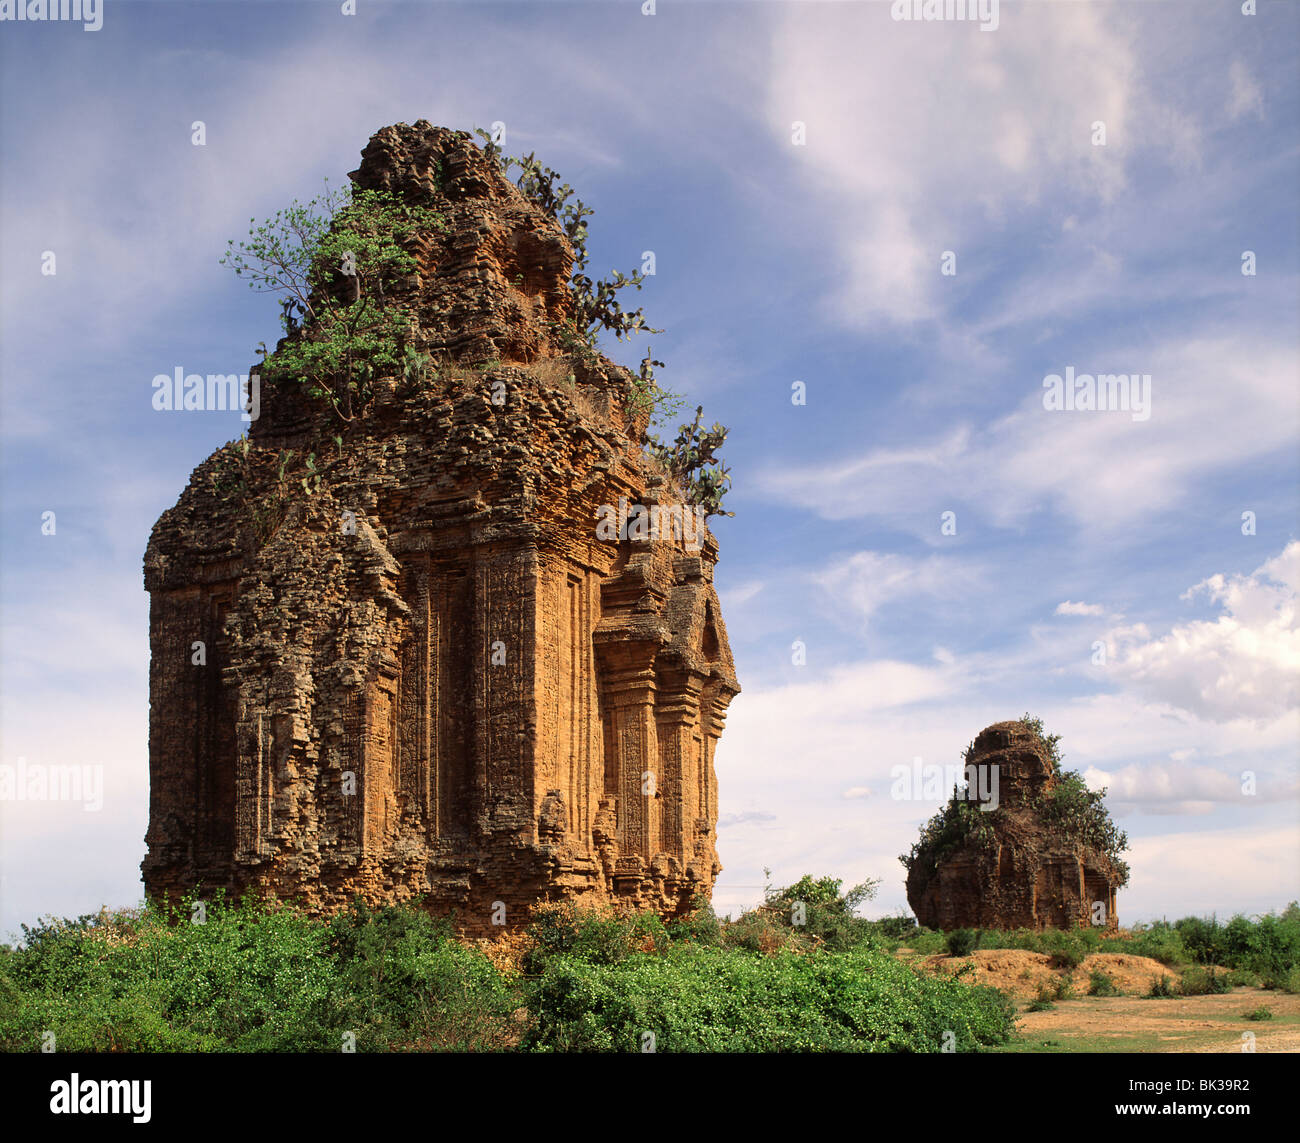 Cham temples dating from the 8th century, Hoa Lai, Vietnam, Indochina, Southeast Asia, Asia - Stock Image